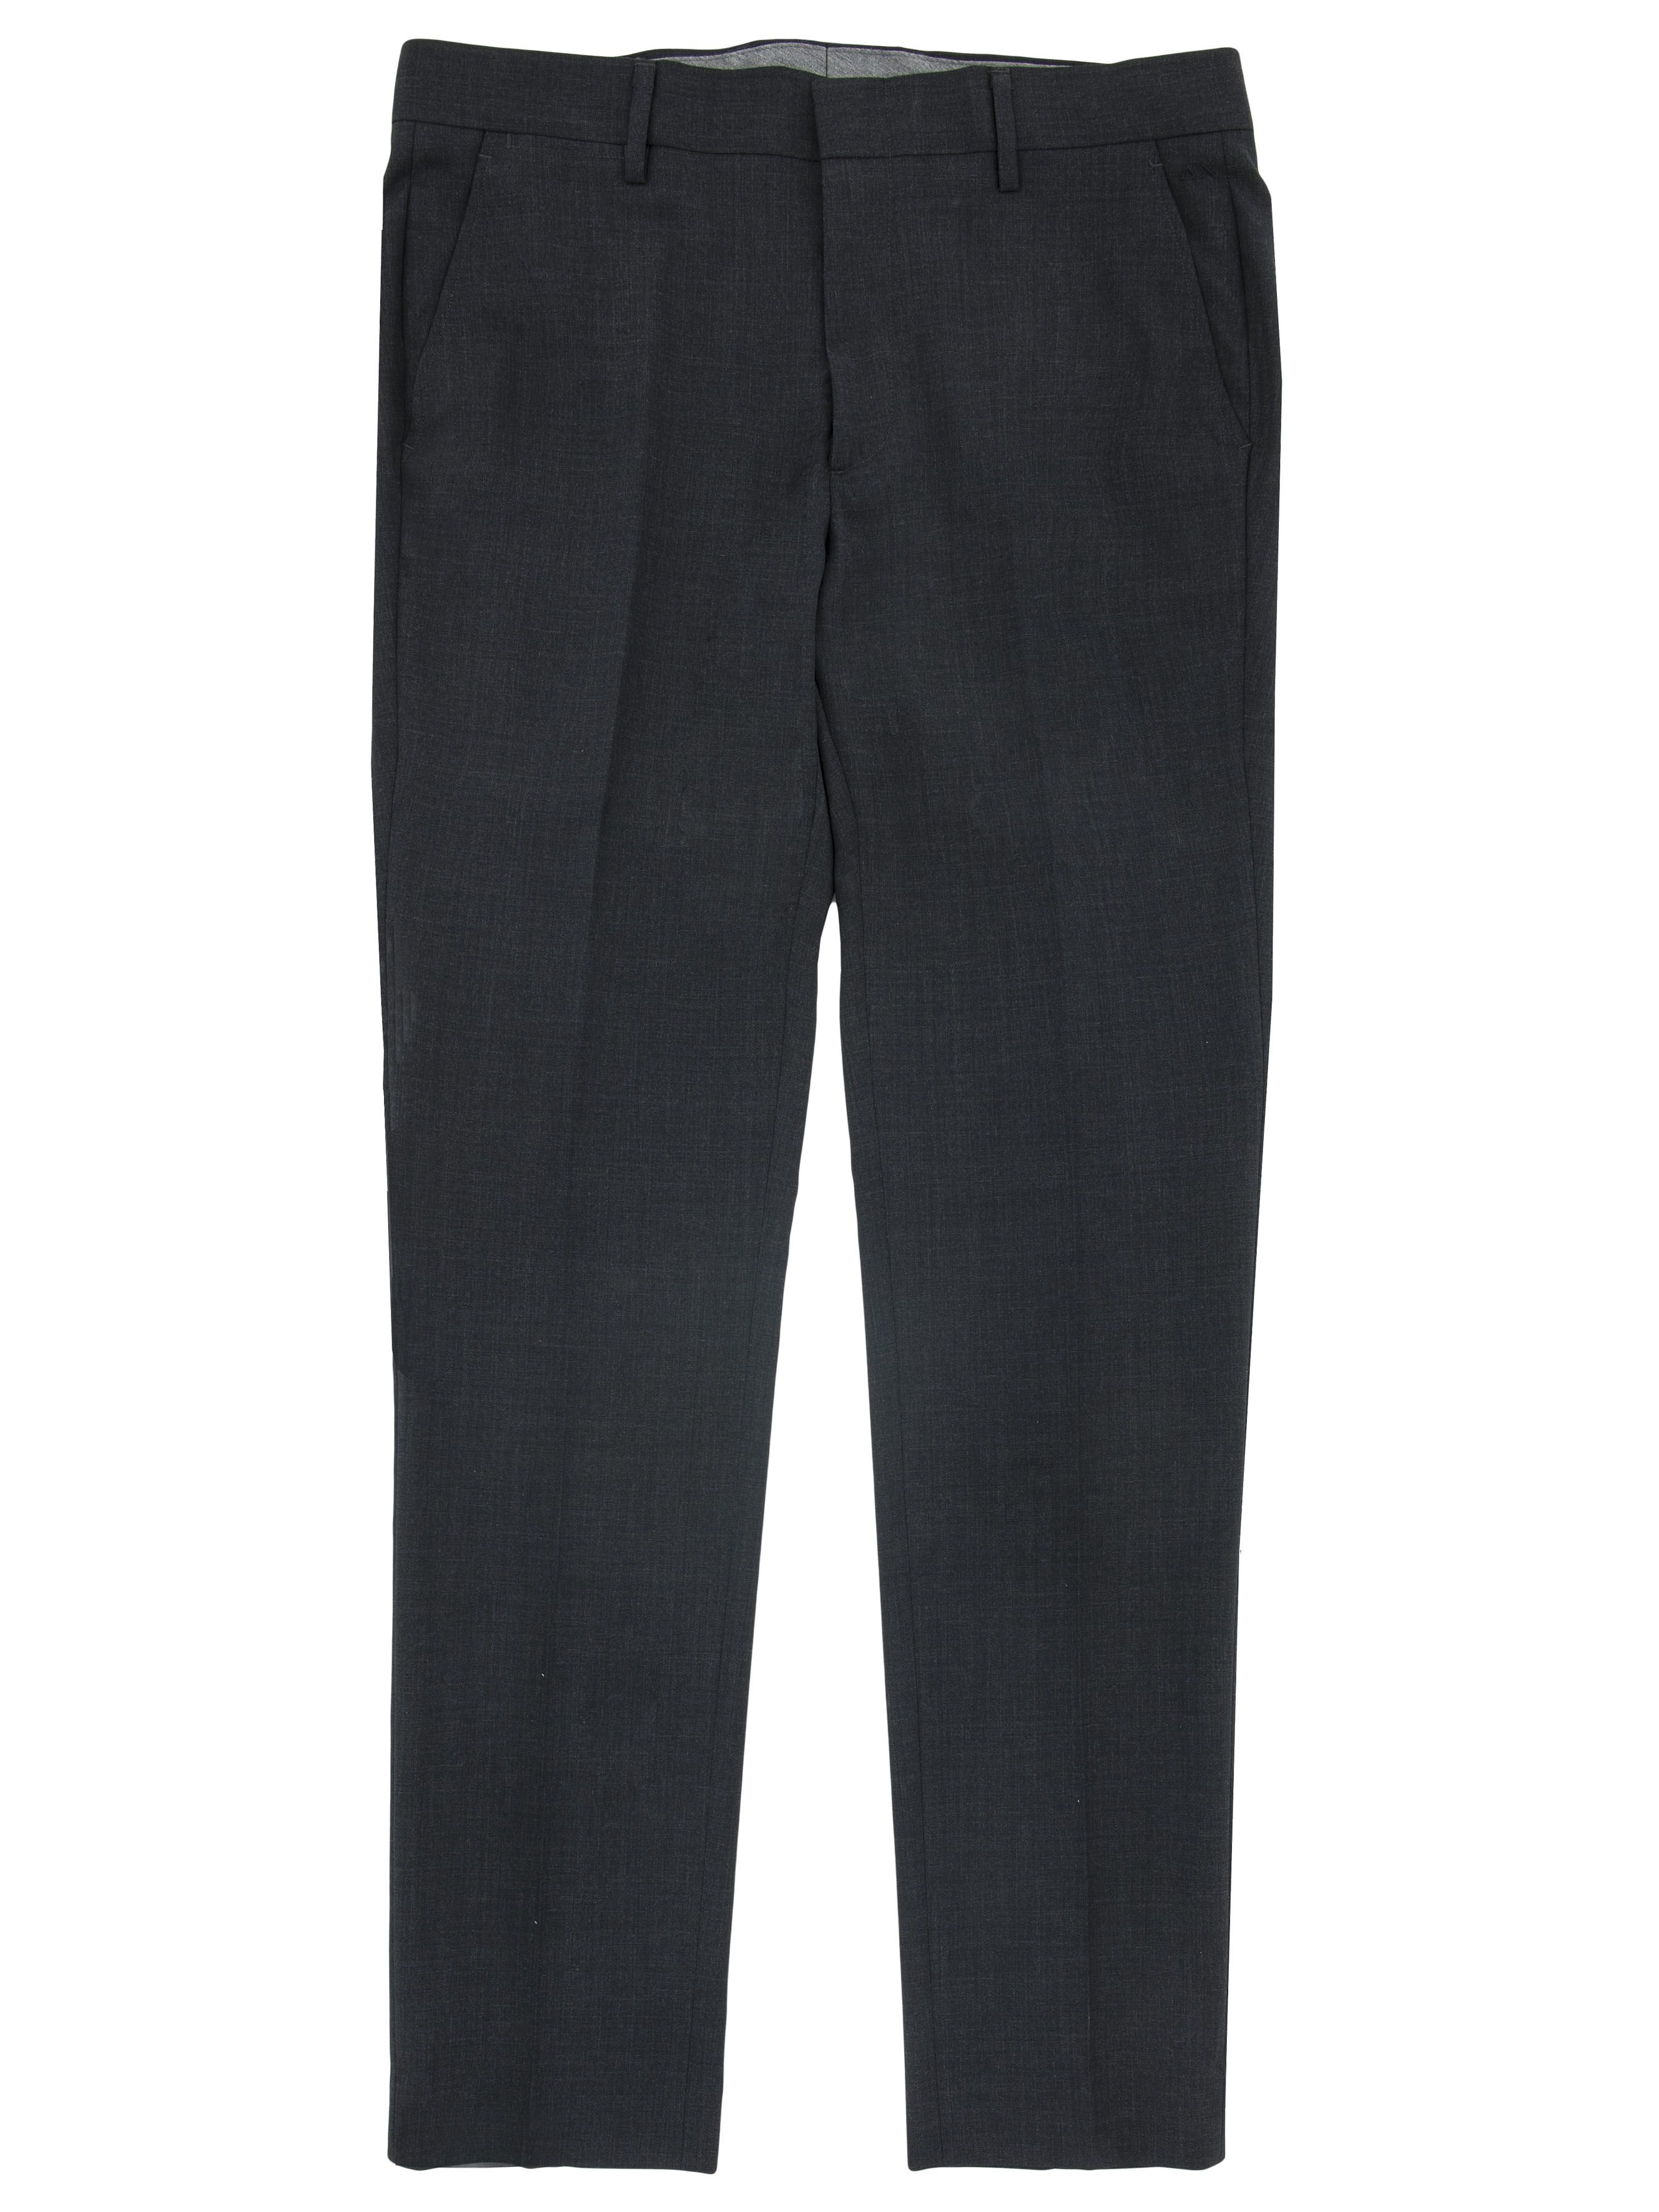 Blue navy light wool trousers. #SUN68 #SUN68xmas #newyear #happynewyear #party #bluenavy #lightwool #trousers #giftideas